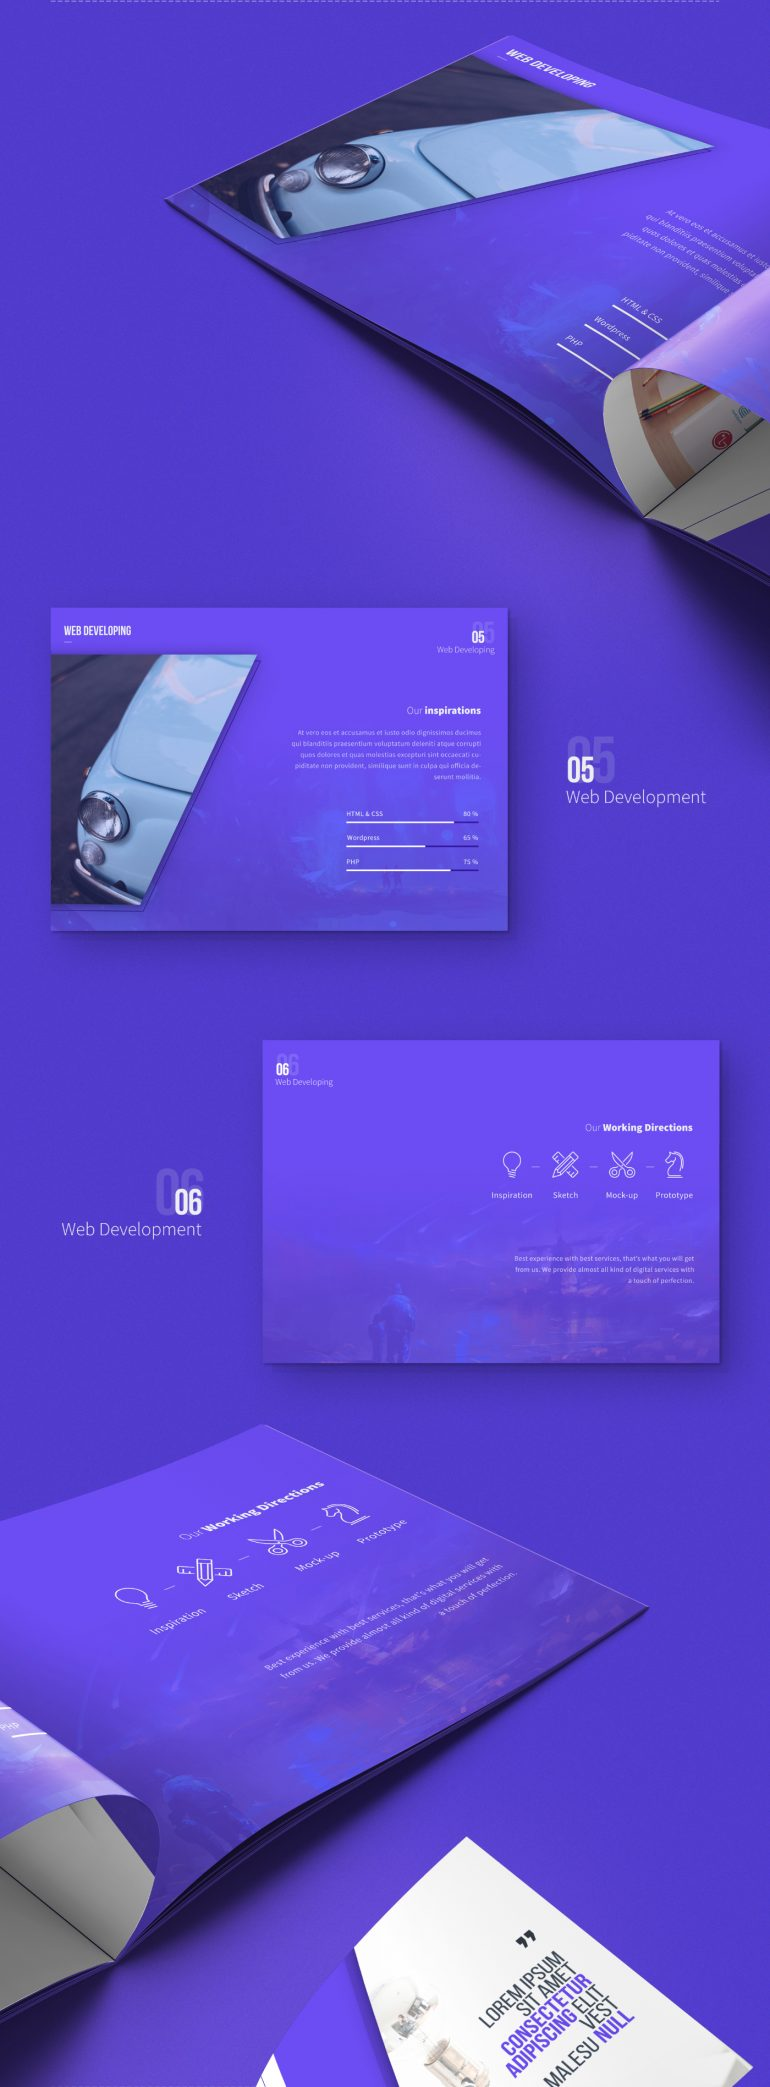 Carsive – 18 Pages Brochure Freebie